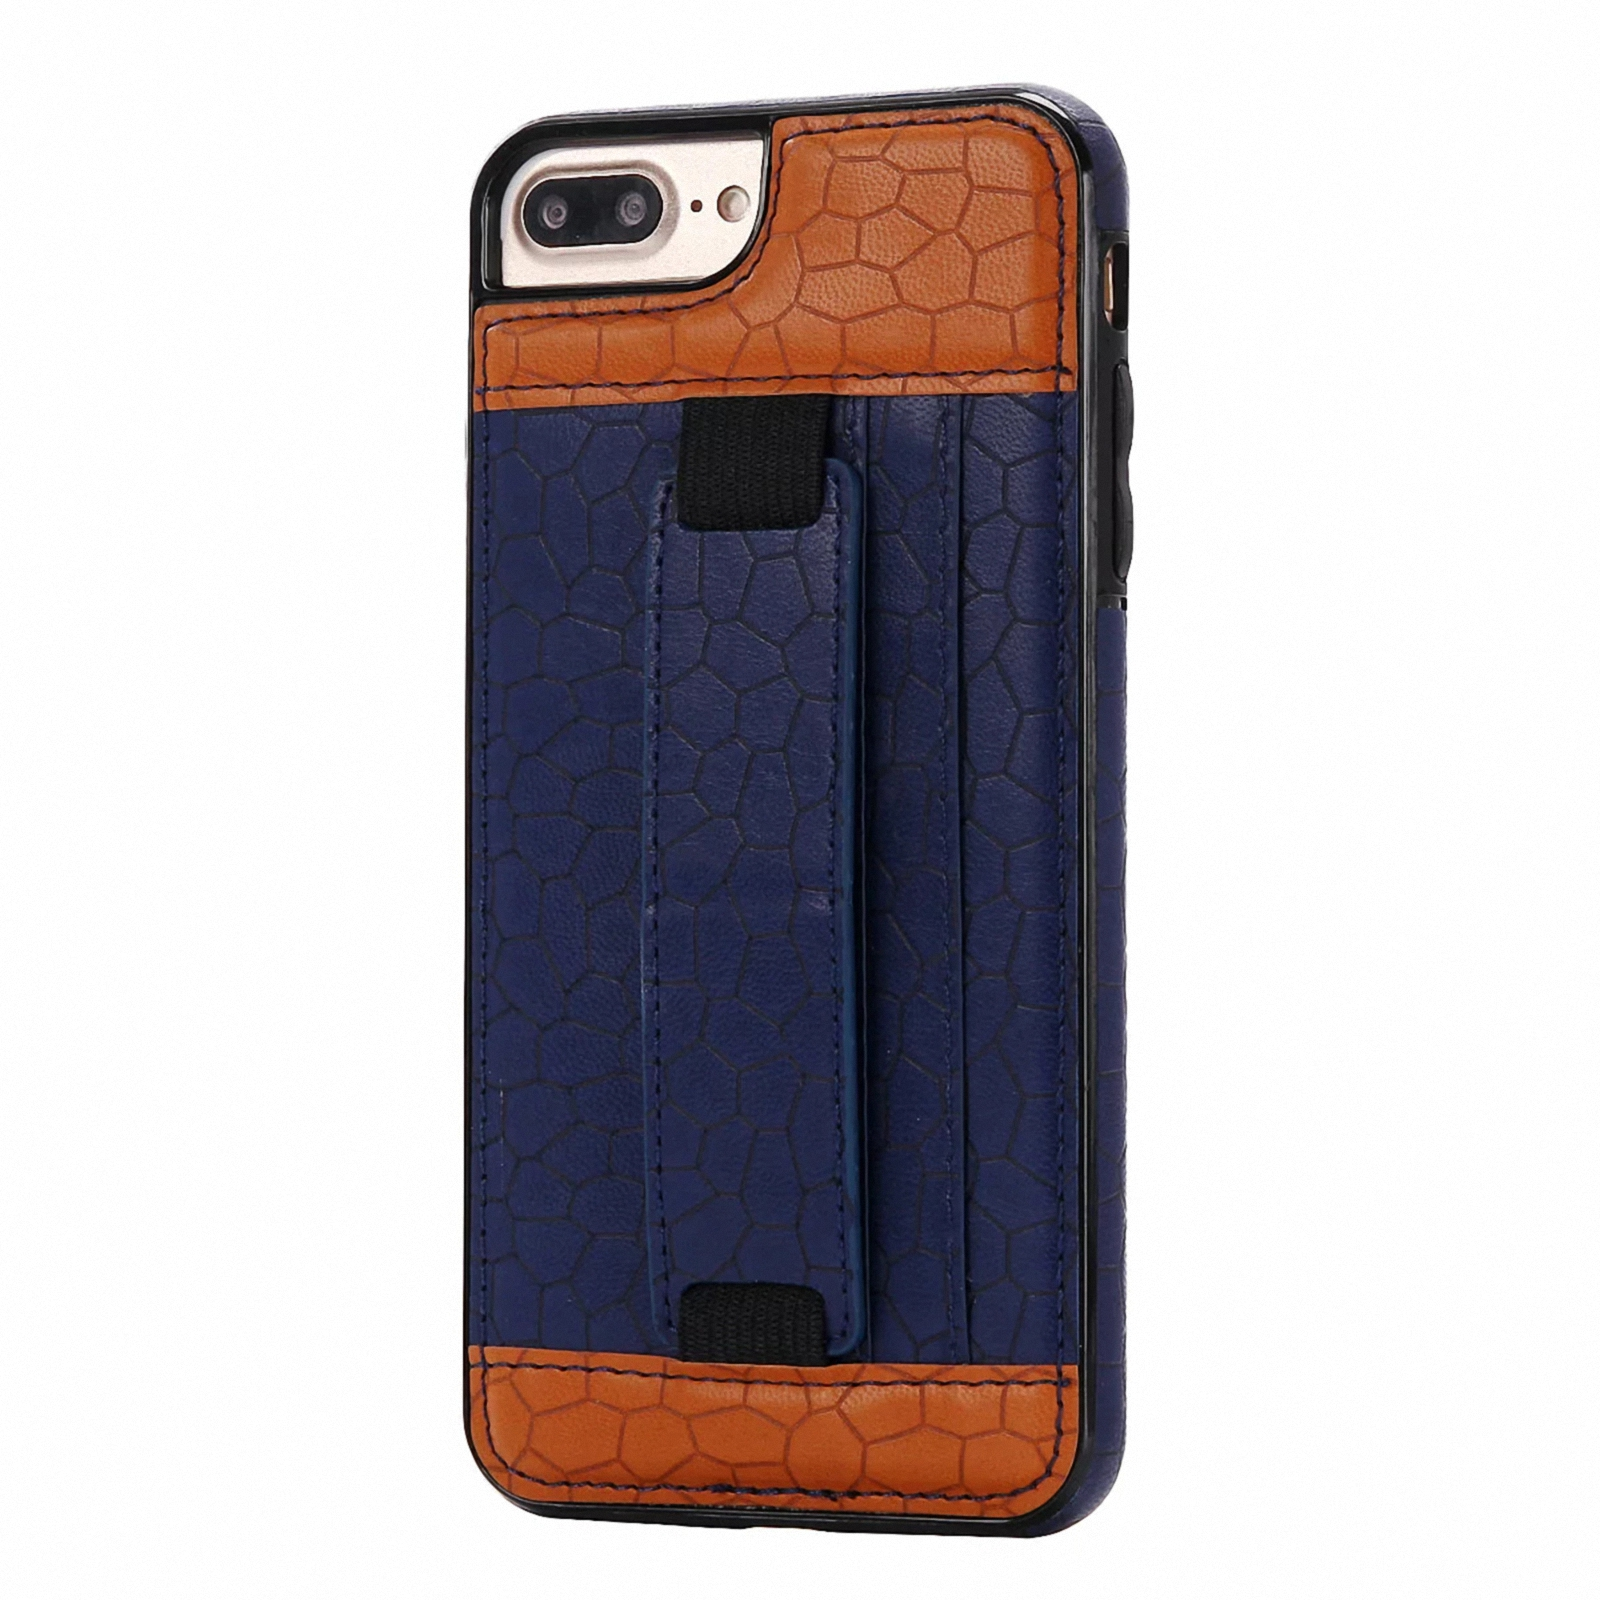 Luxury Leather With Hand Strap Holder Protective Case Cover For iPhone 7/7 Plus | eBay